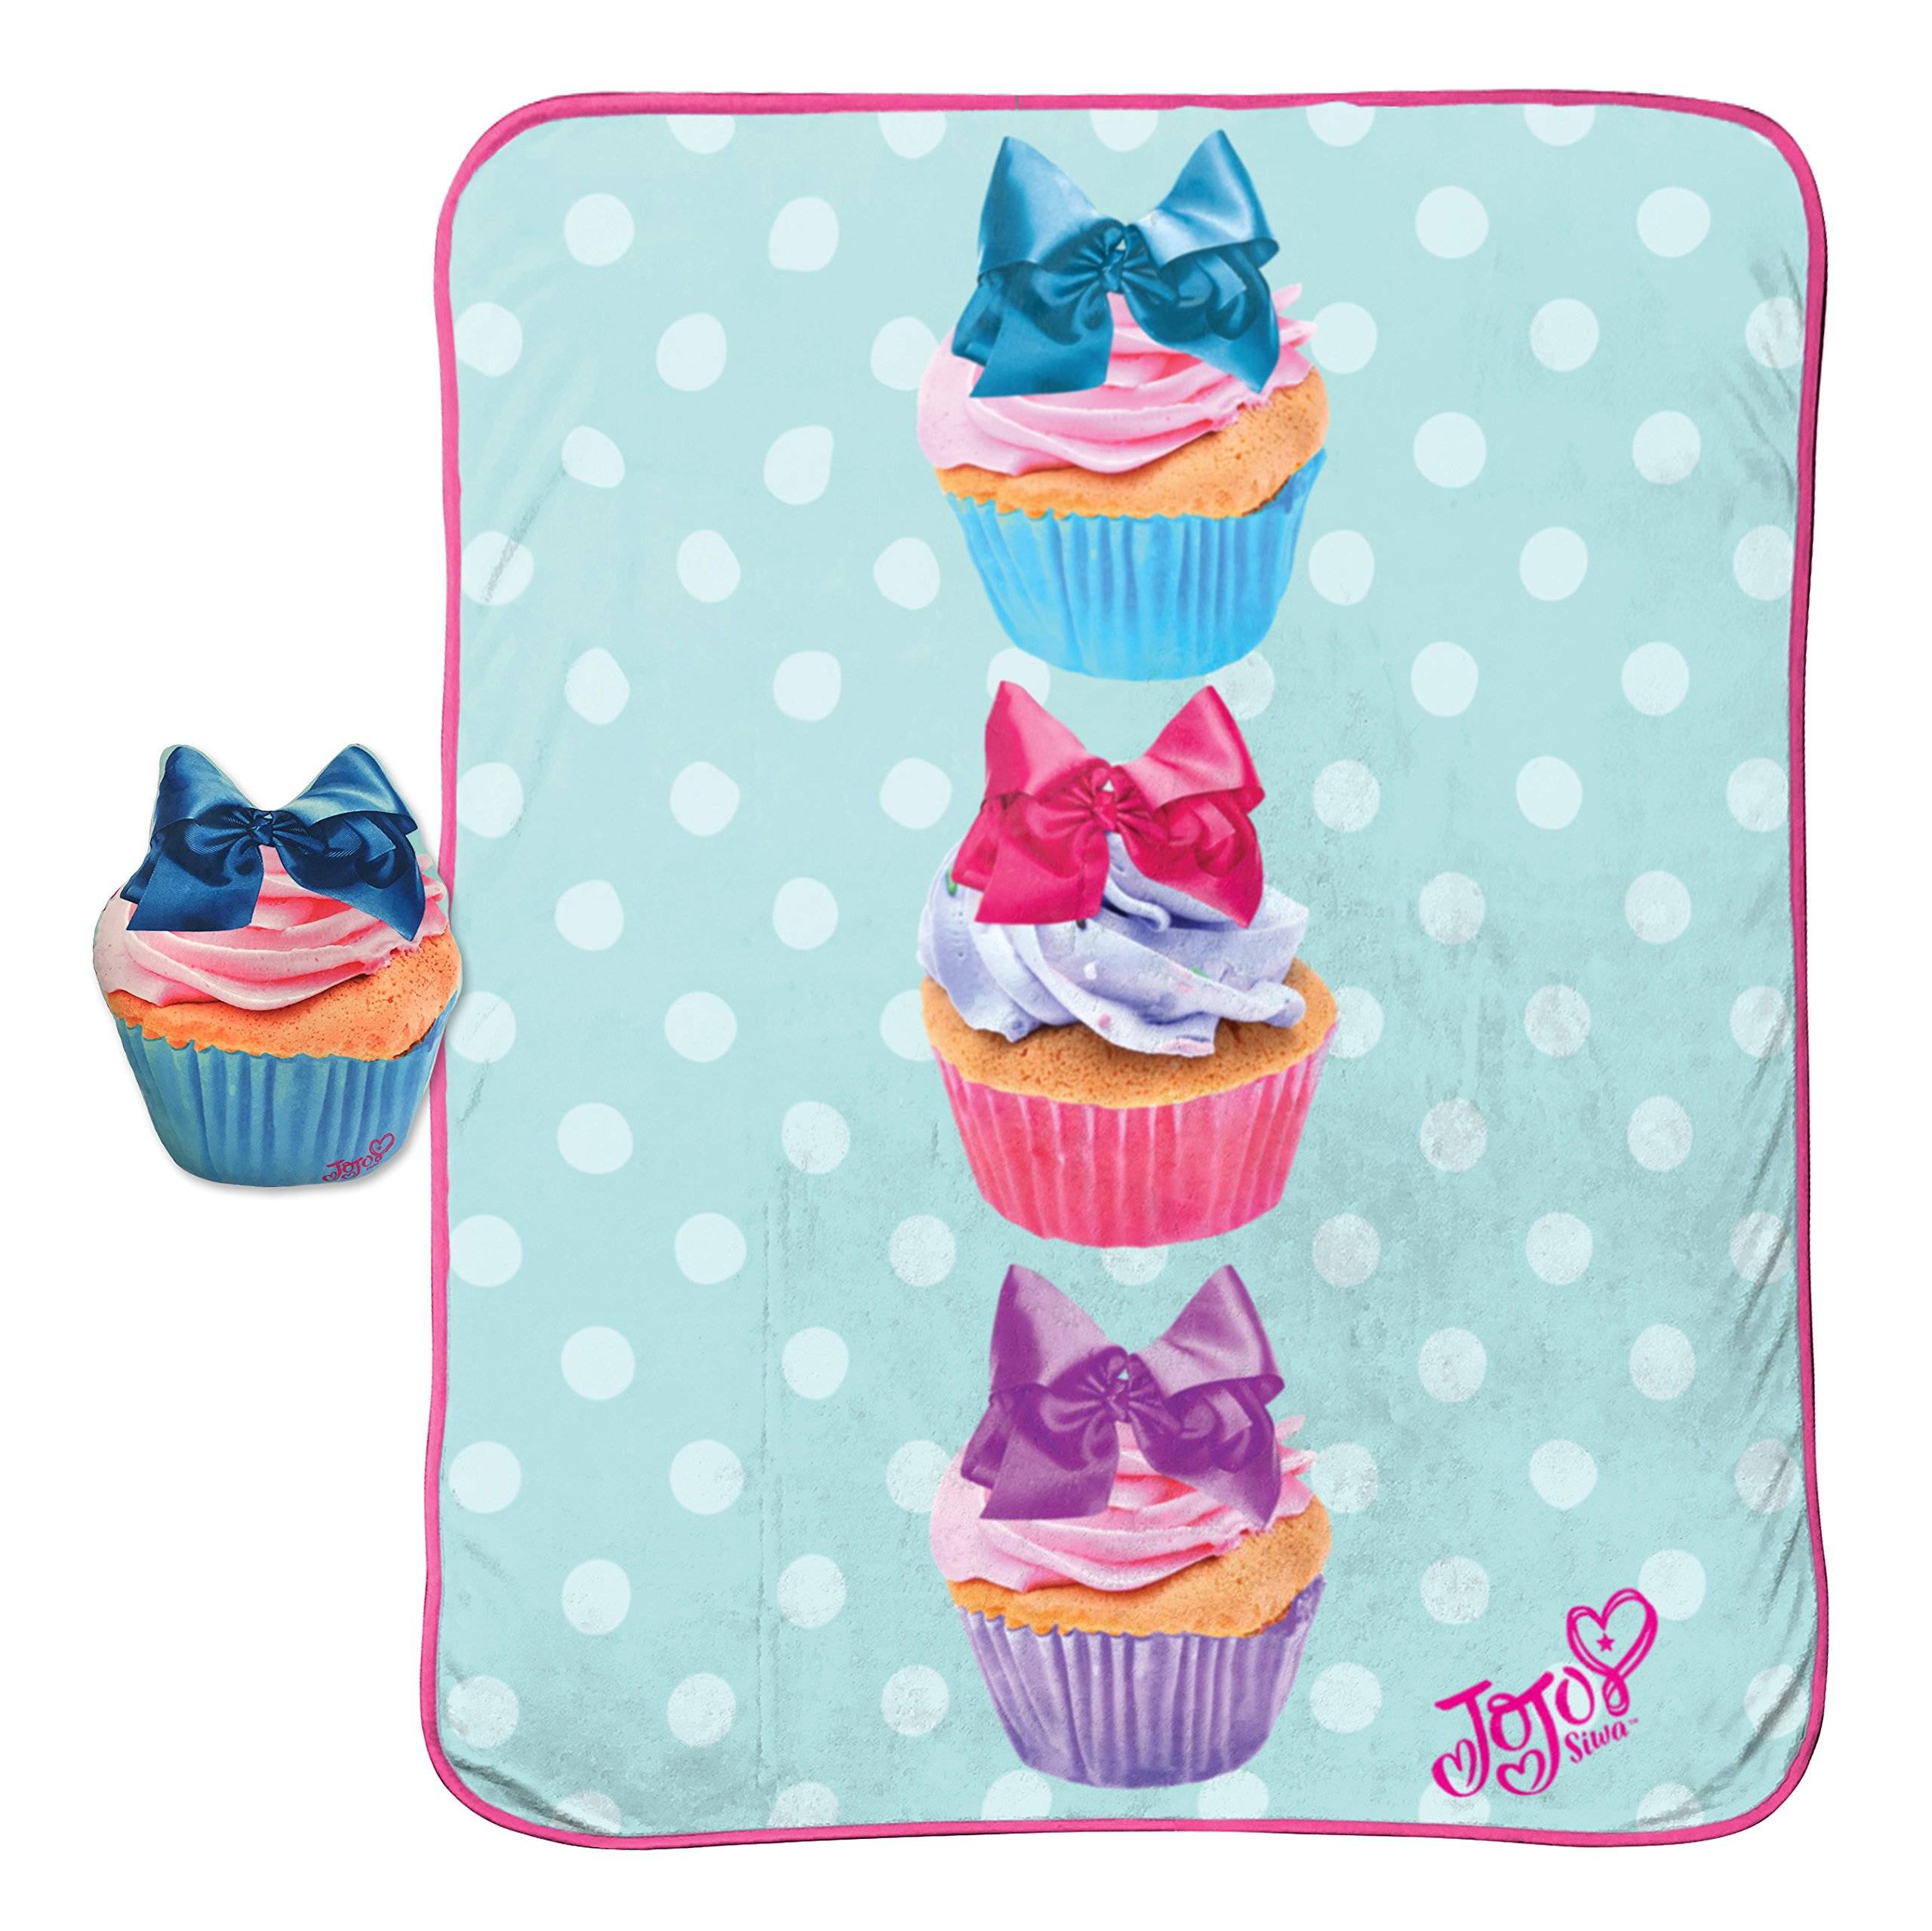 Jojo Siwa Throw Blanket and Cupcake Pillow Set